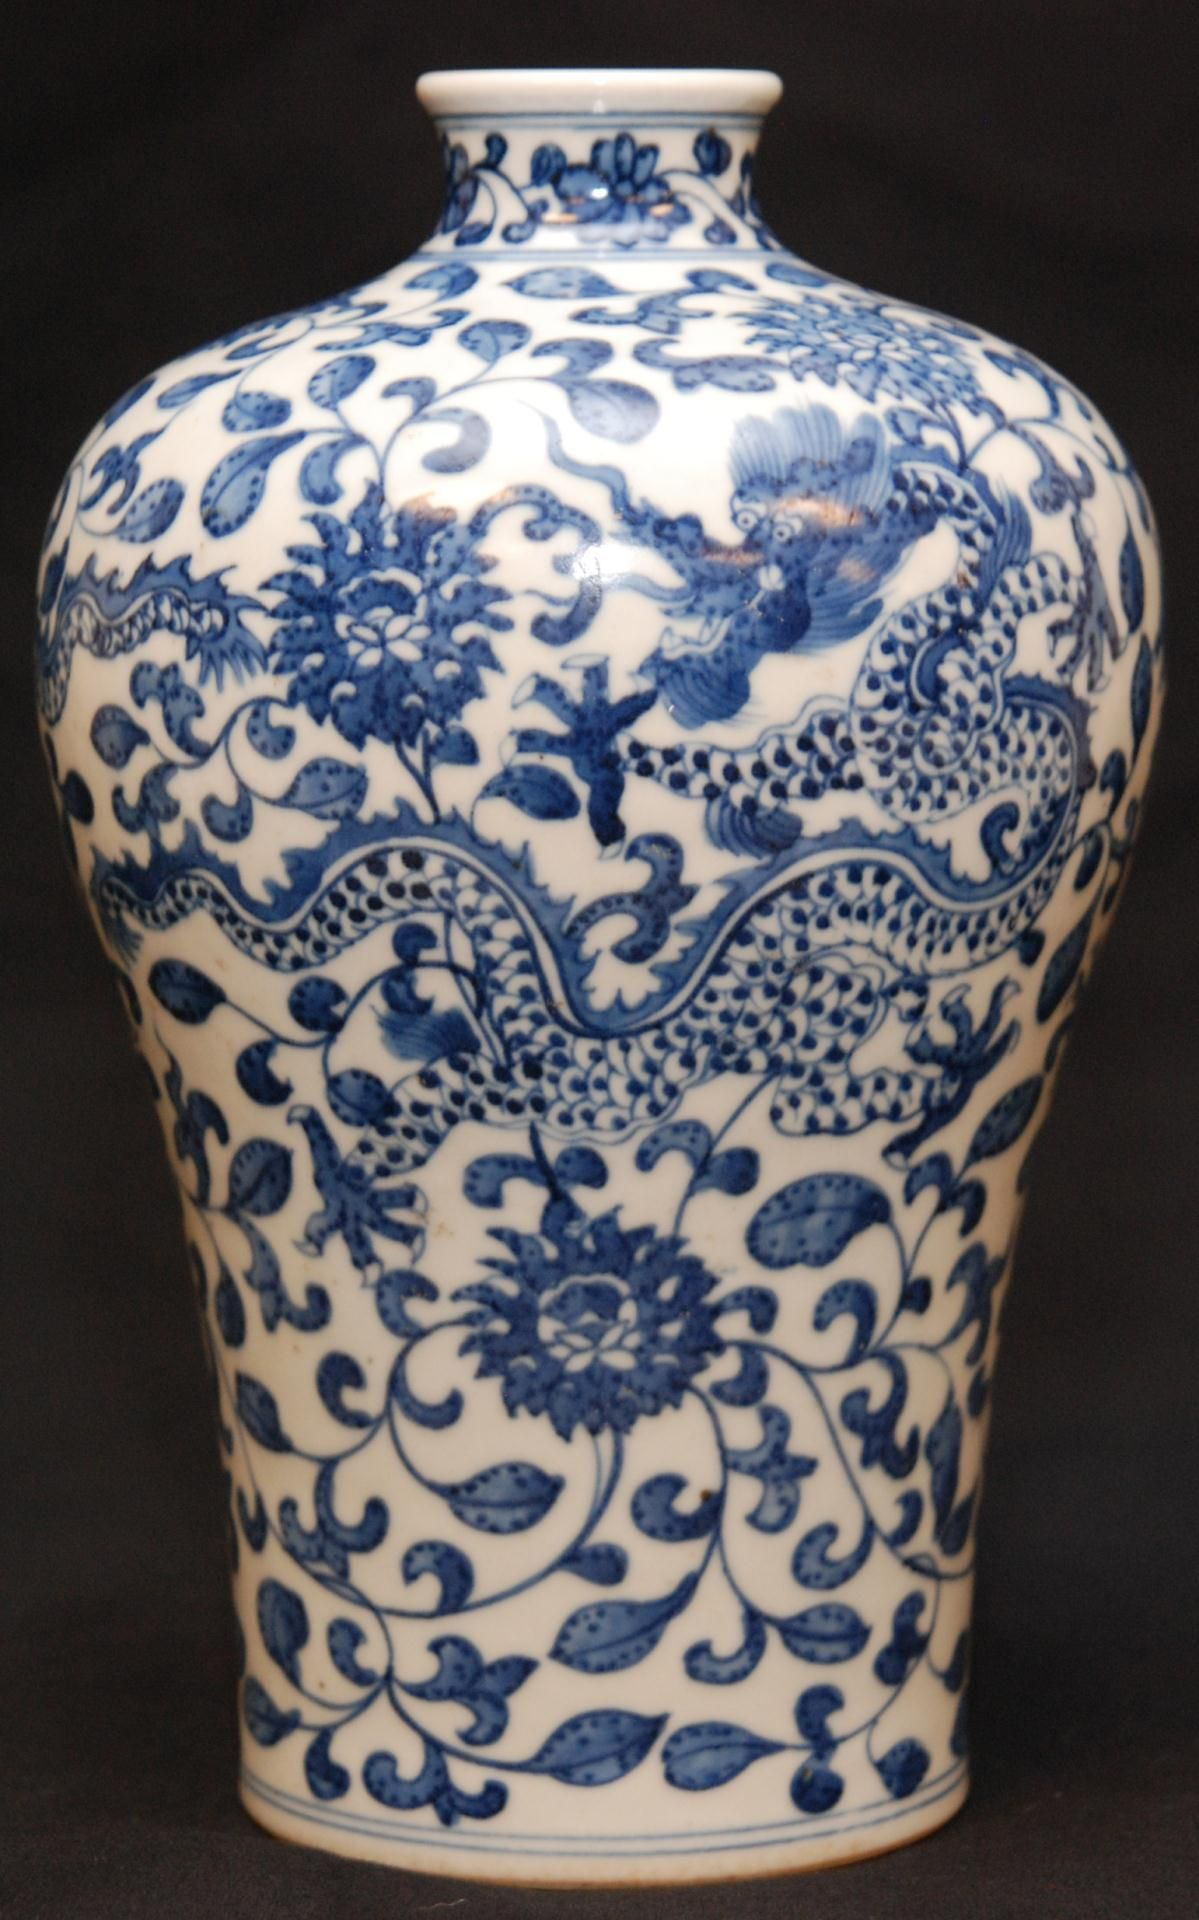 Chinese qianlong porcelain dragons vase chinese qing dynasty chinese qianlong porcelain dragons vase chinese qing dynasty qianlong hand painted blue and white porcelain mei reviewsmspy